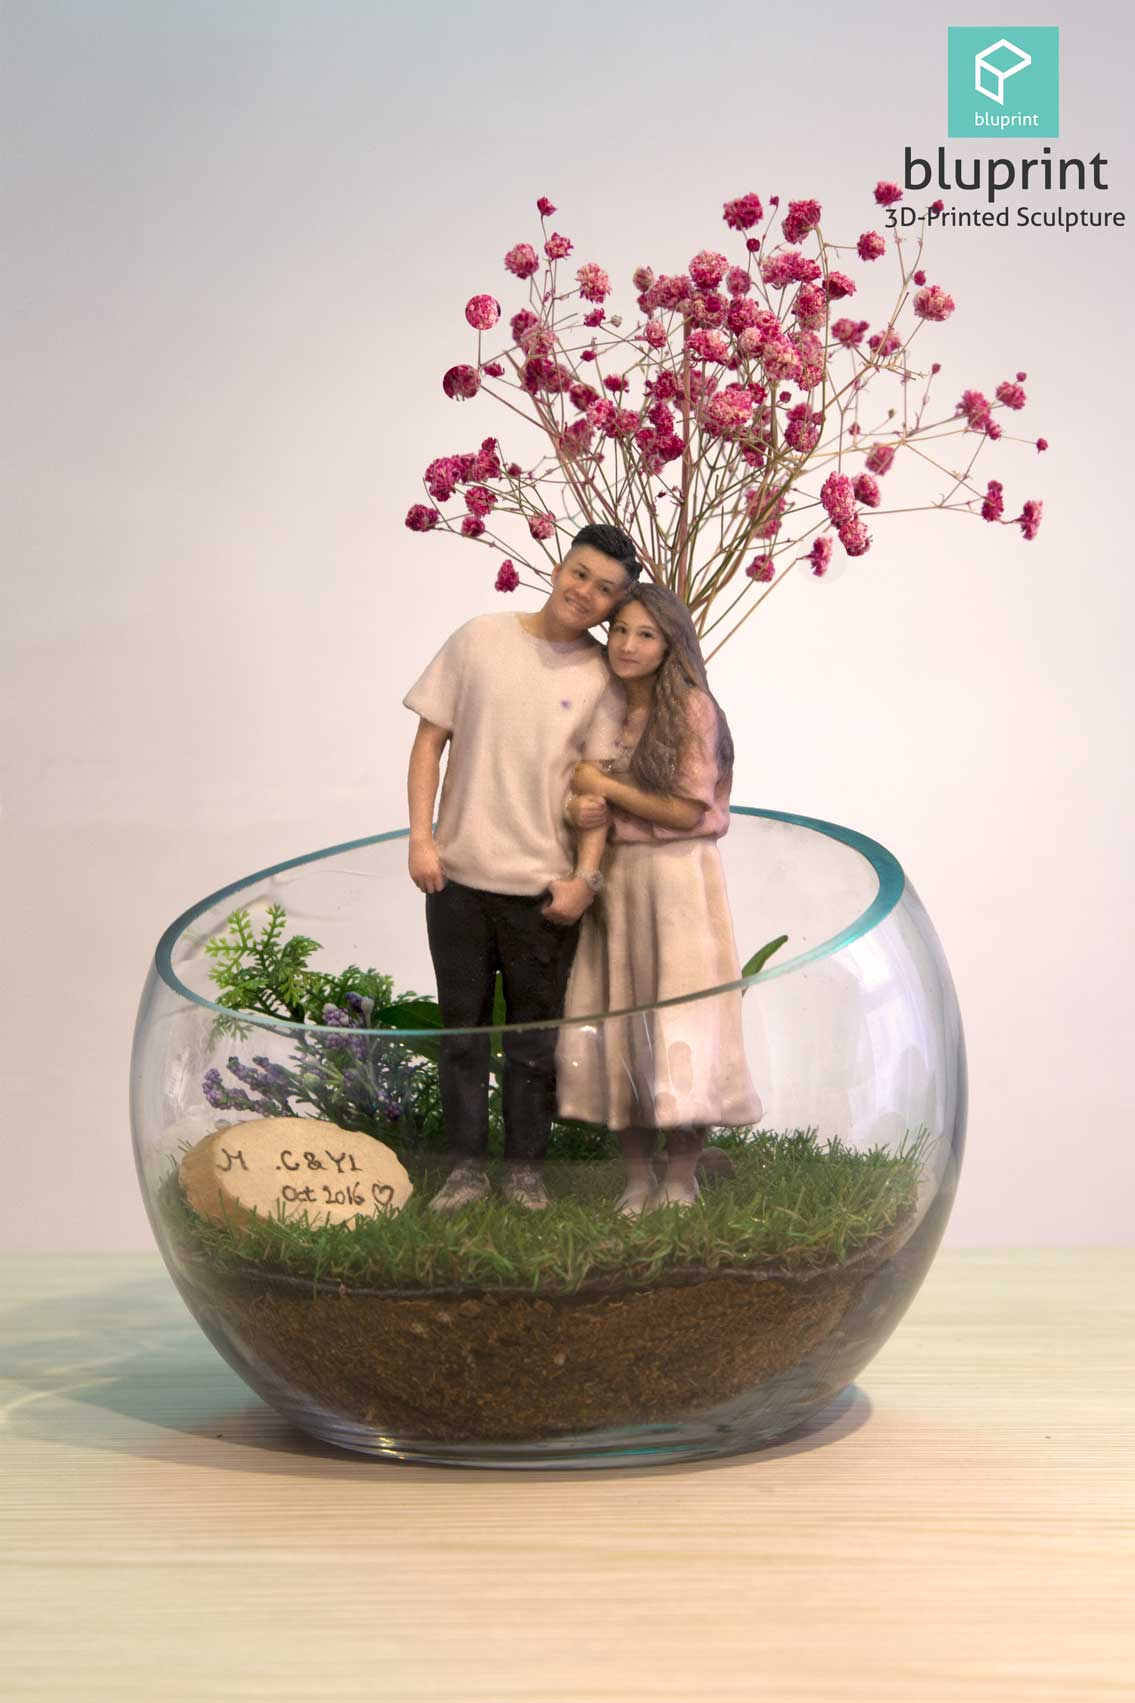 bluprint 3d figure sculpture hong kong couple dry flower terrarium